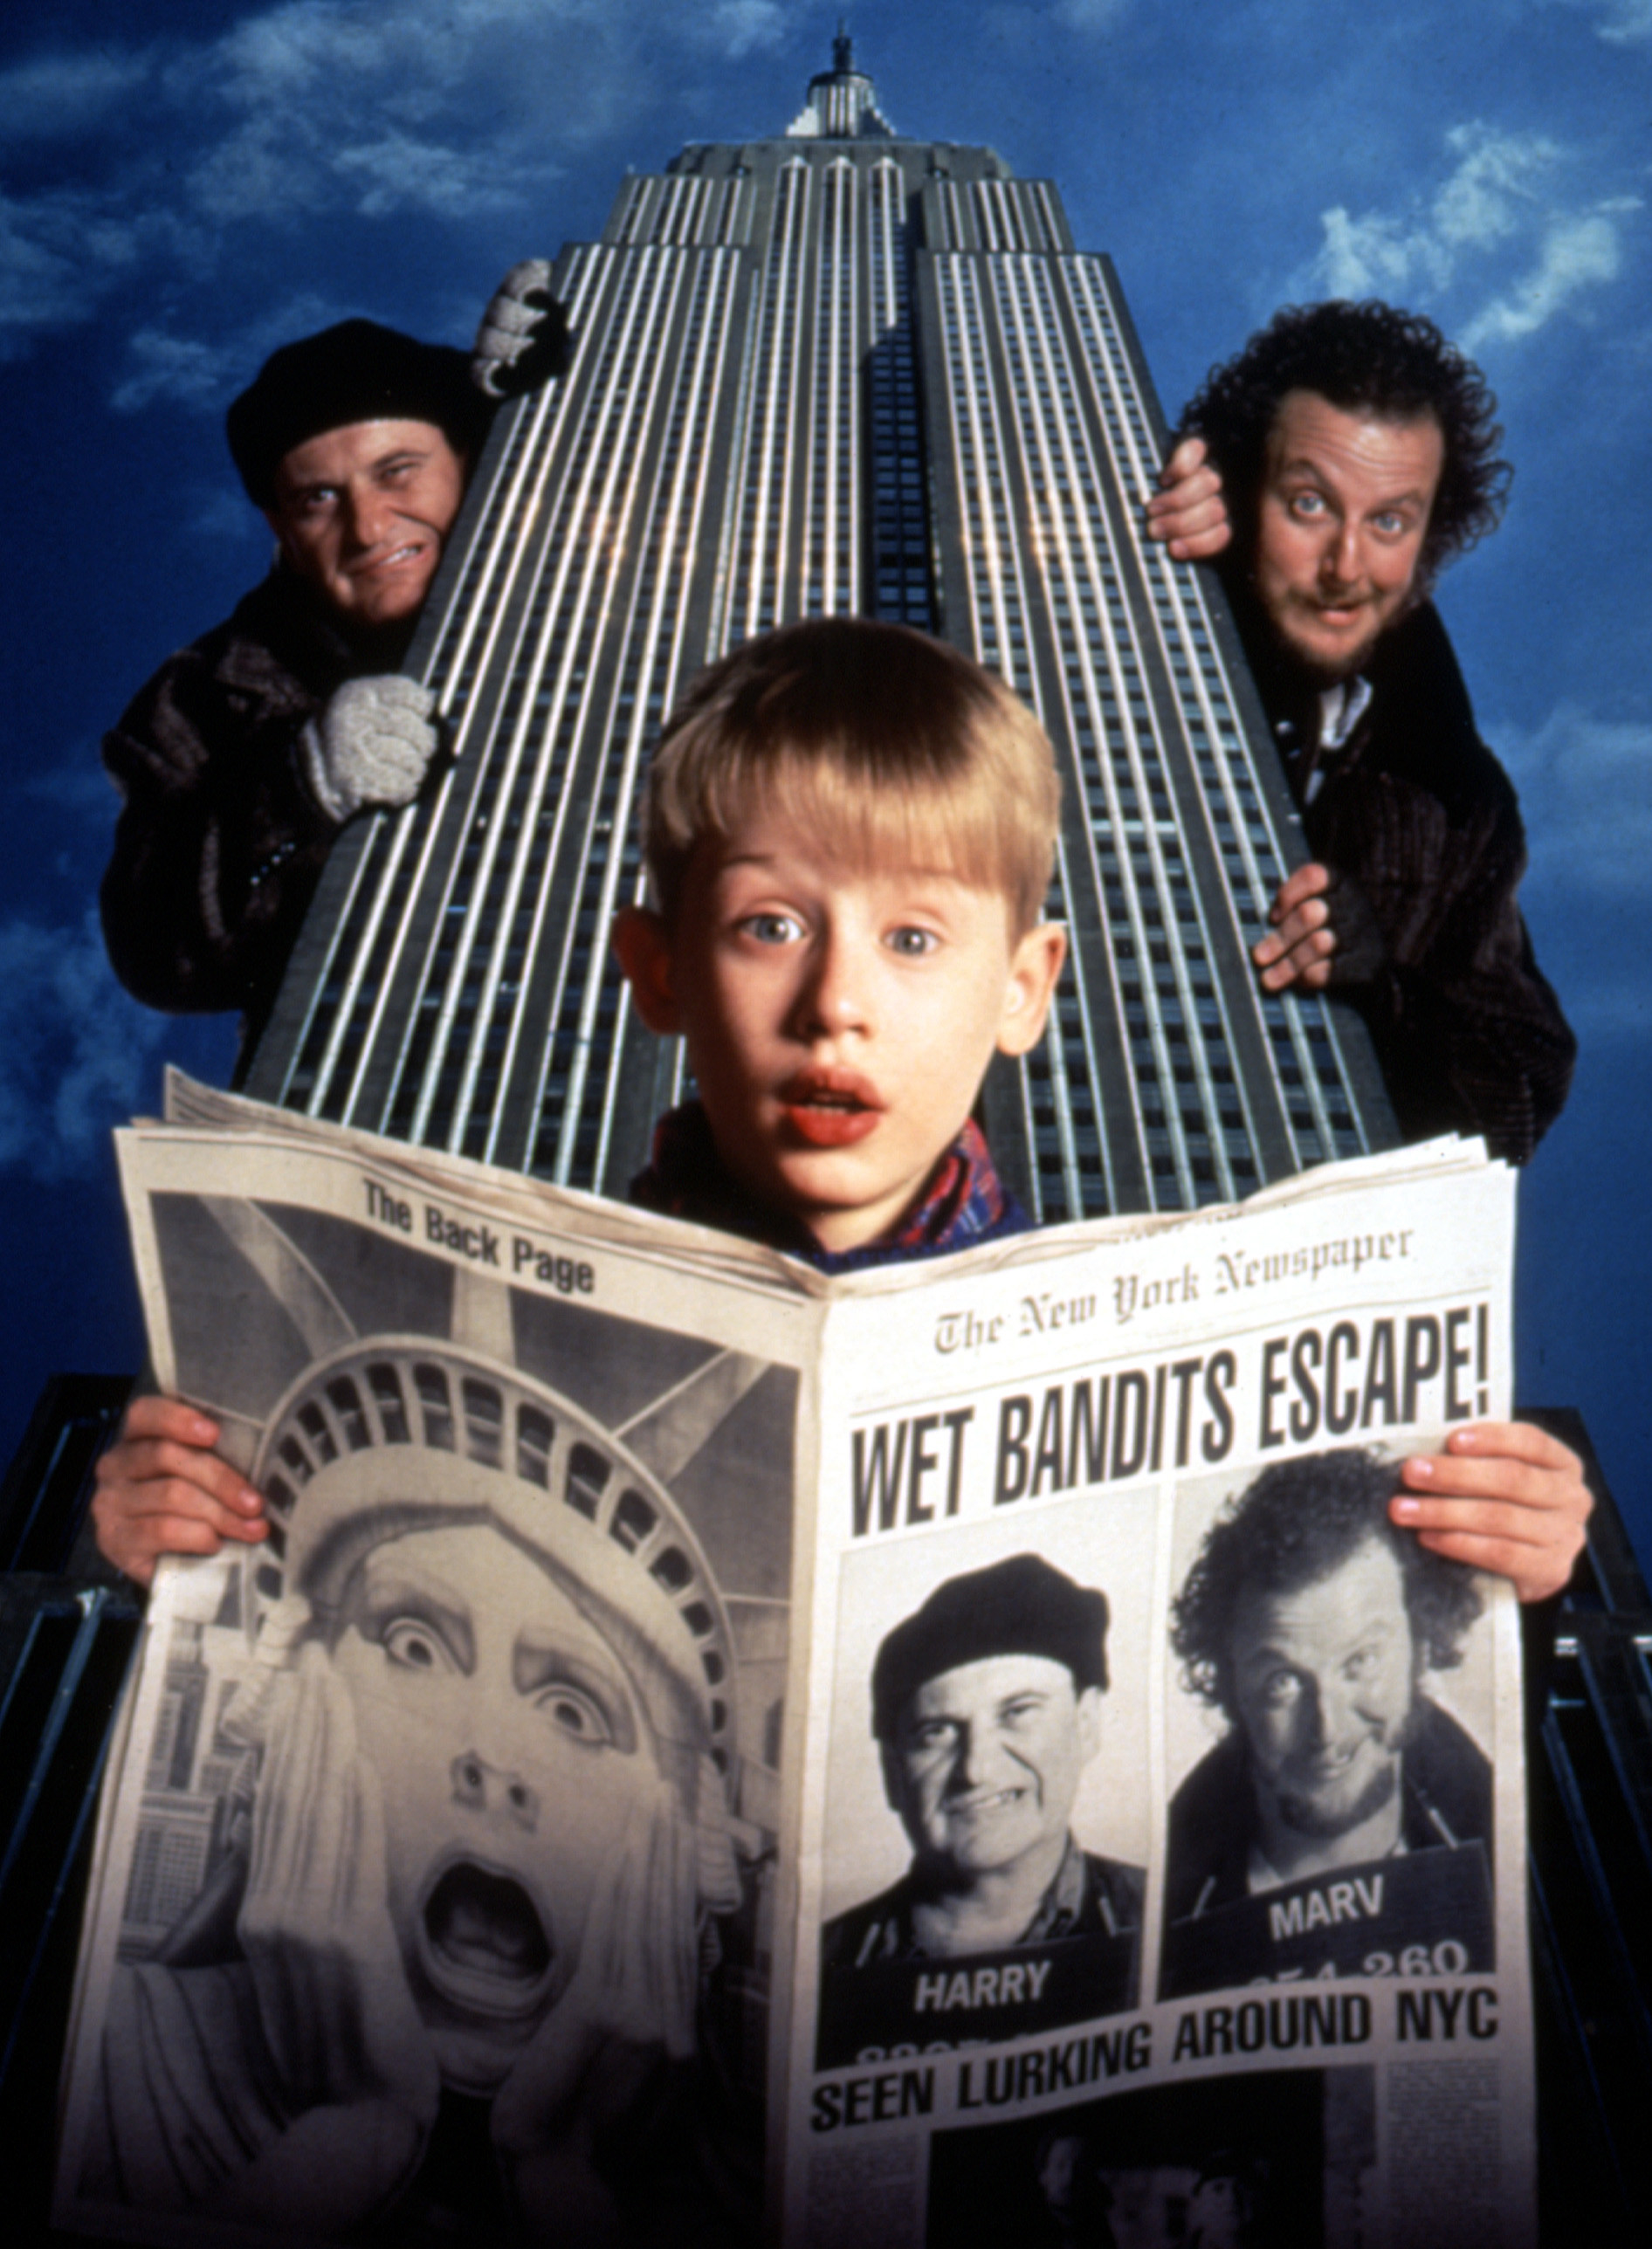 HOME ALONE 2: LOST IN NEW YORK, Joe Pesci, Macaulay Culkin, Daniel Stern, 1992.